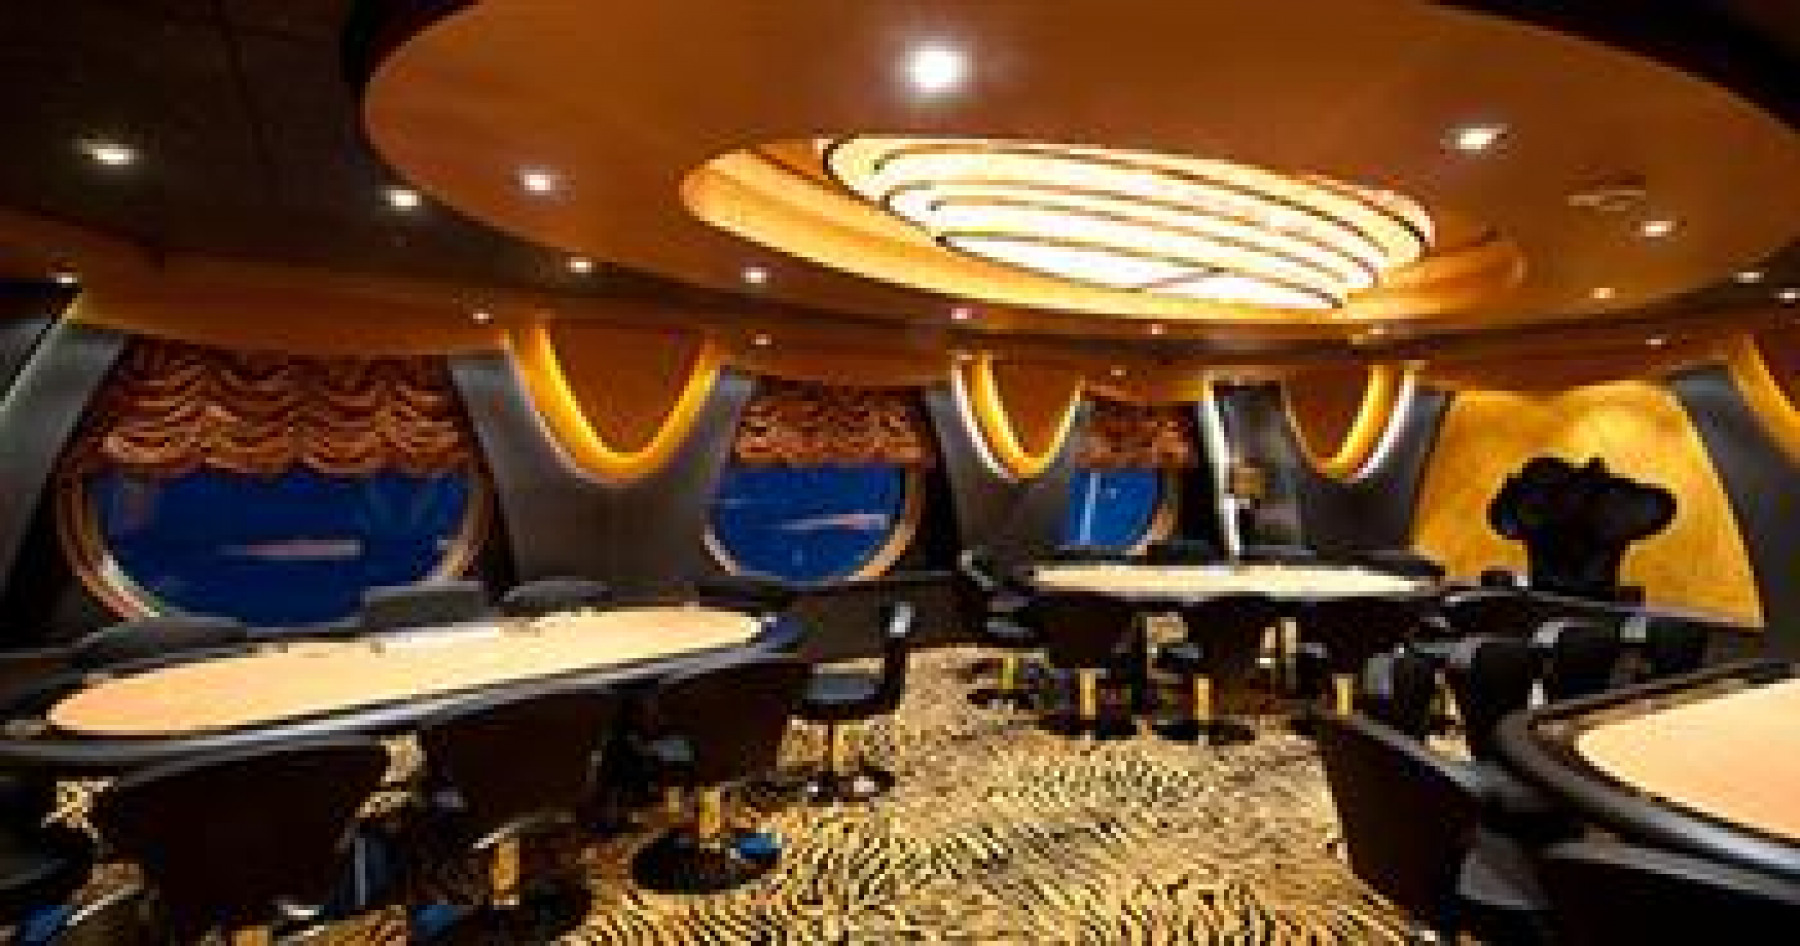 MSC Cruises Musica Class poker room.jpg